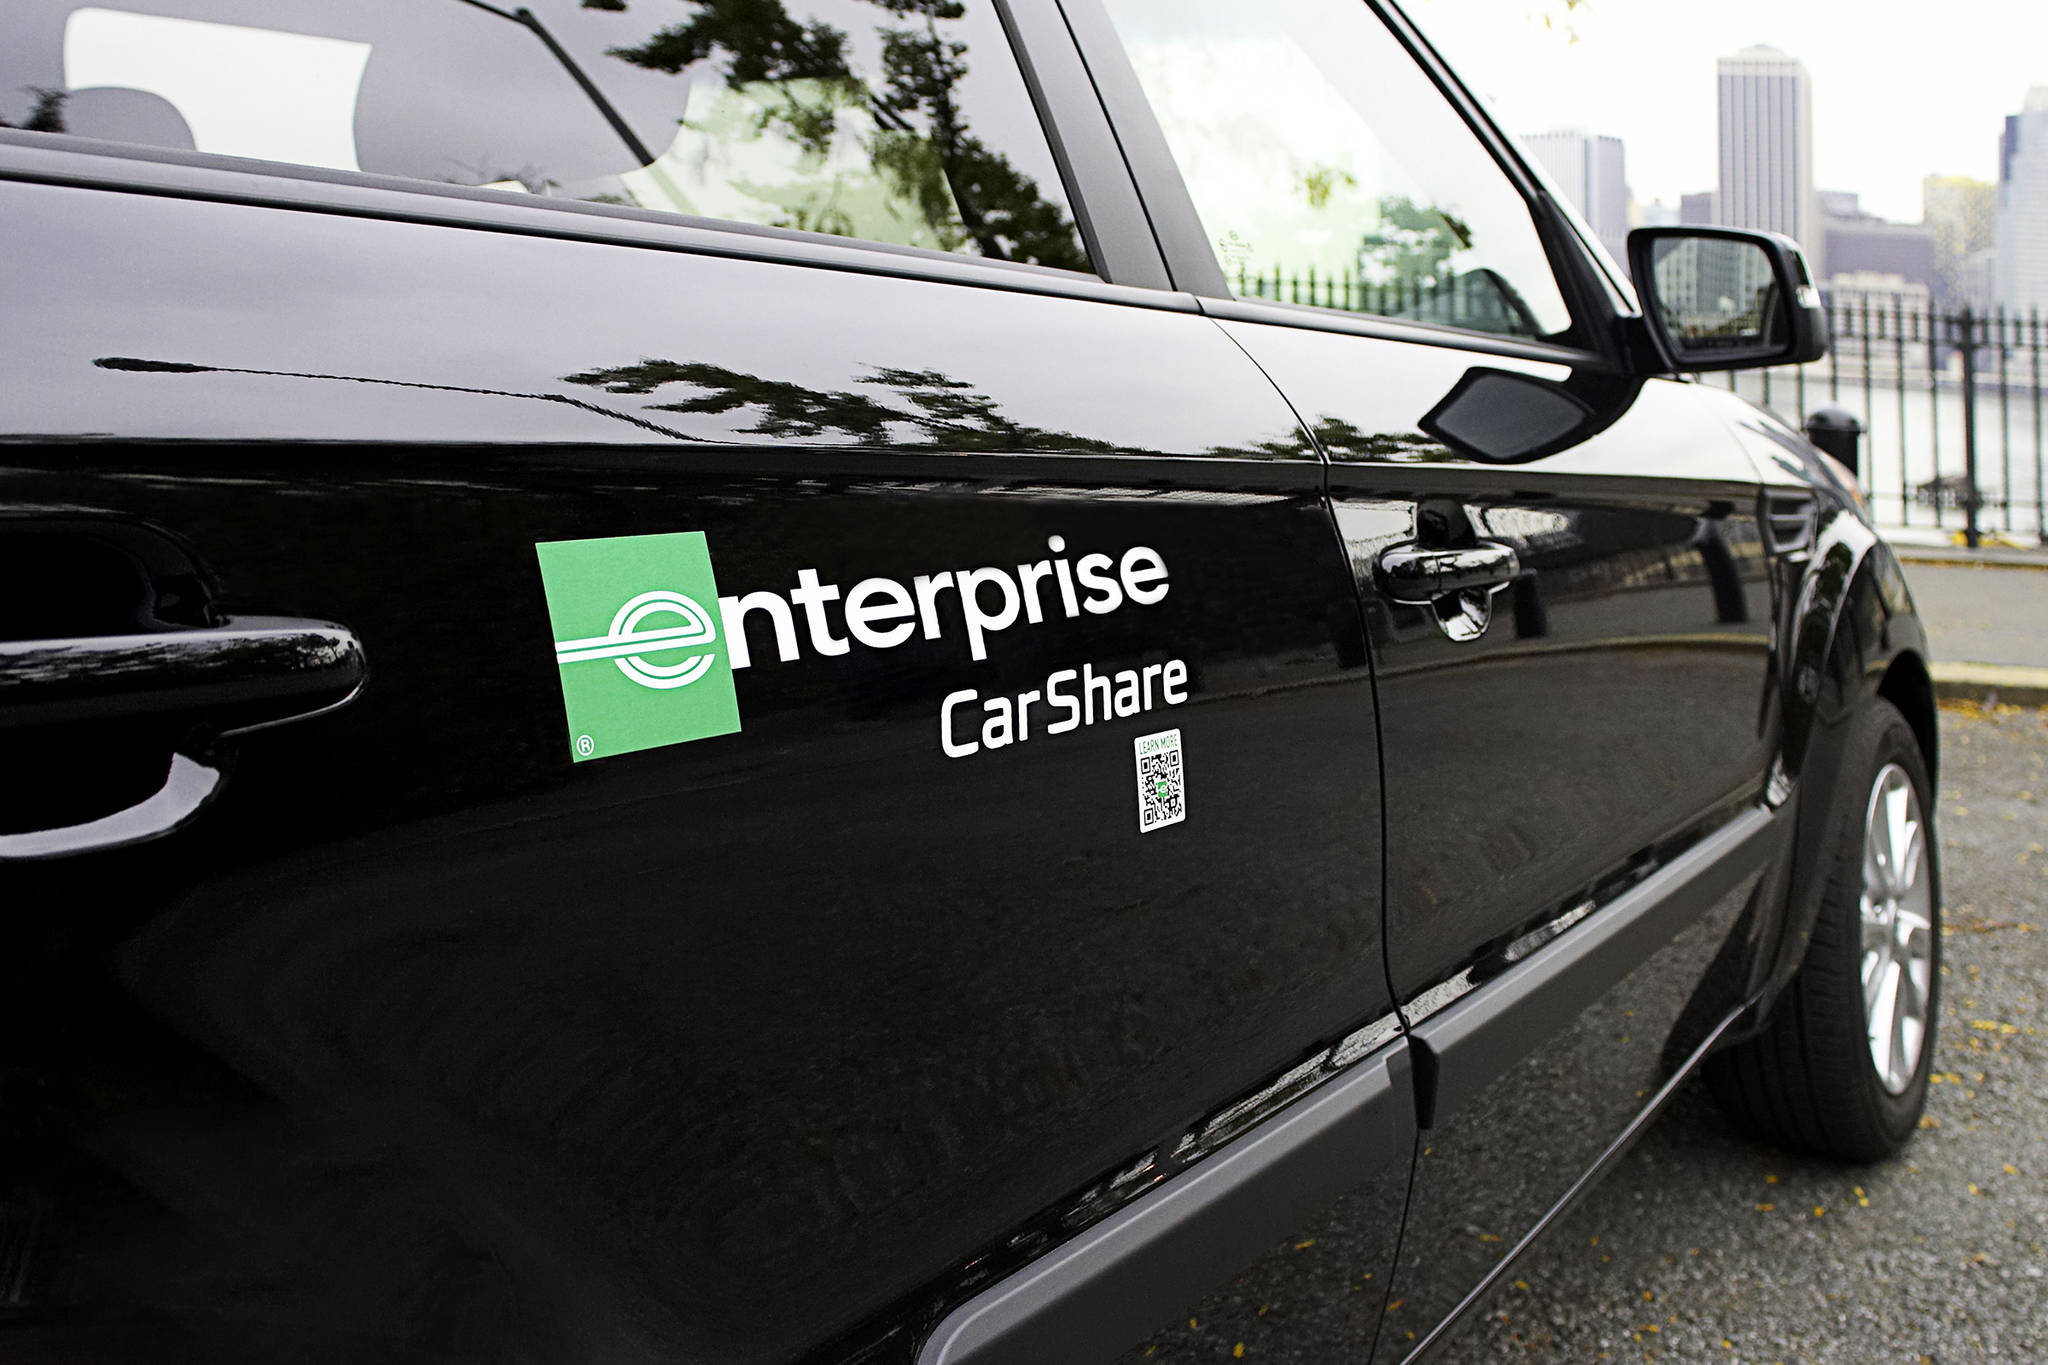 Opinion: Peer-to-peer car rental companies need to face, not hide, facts